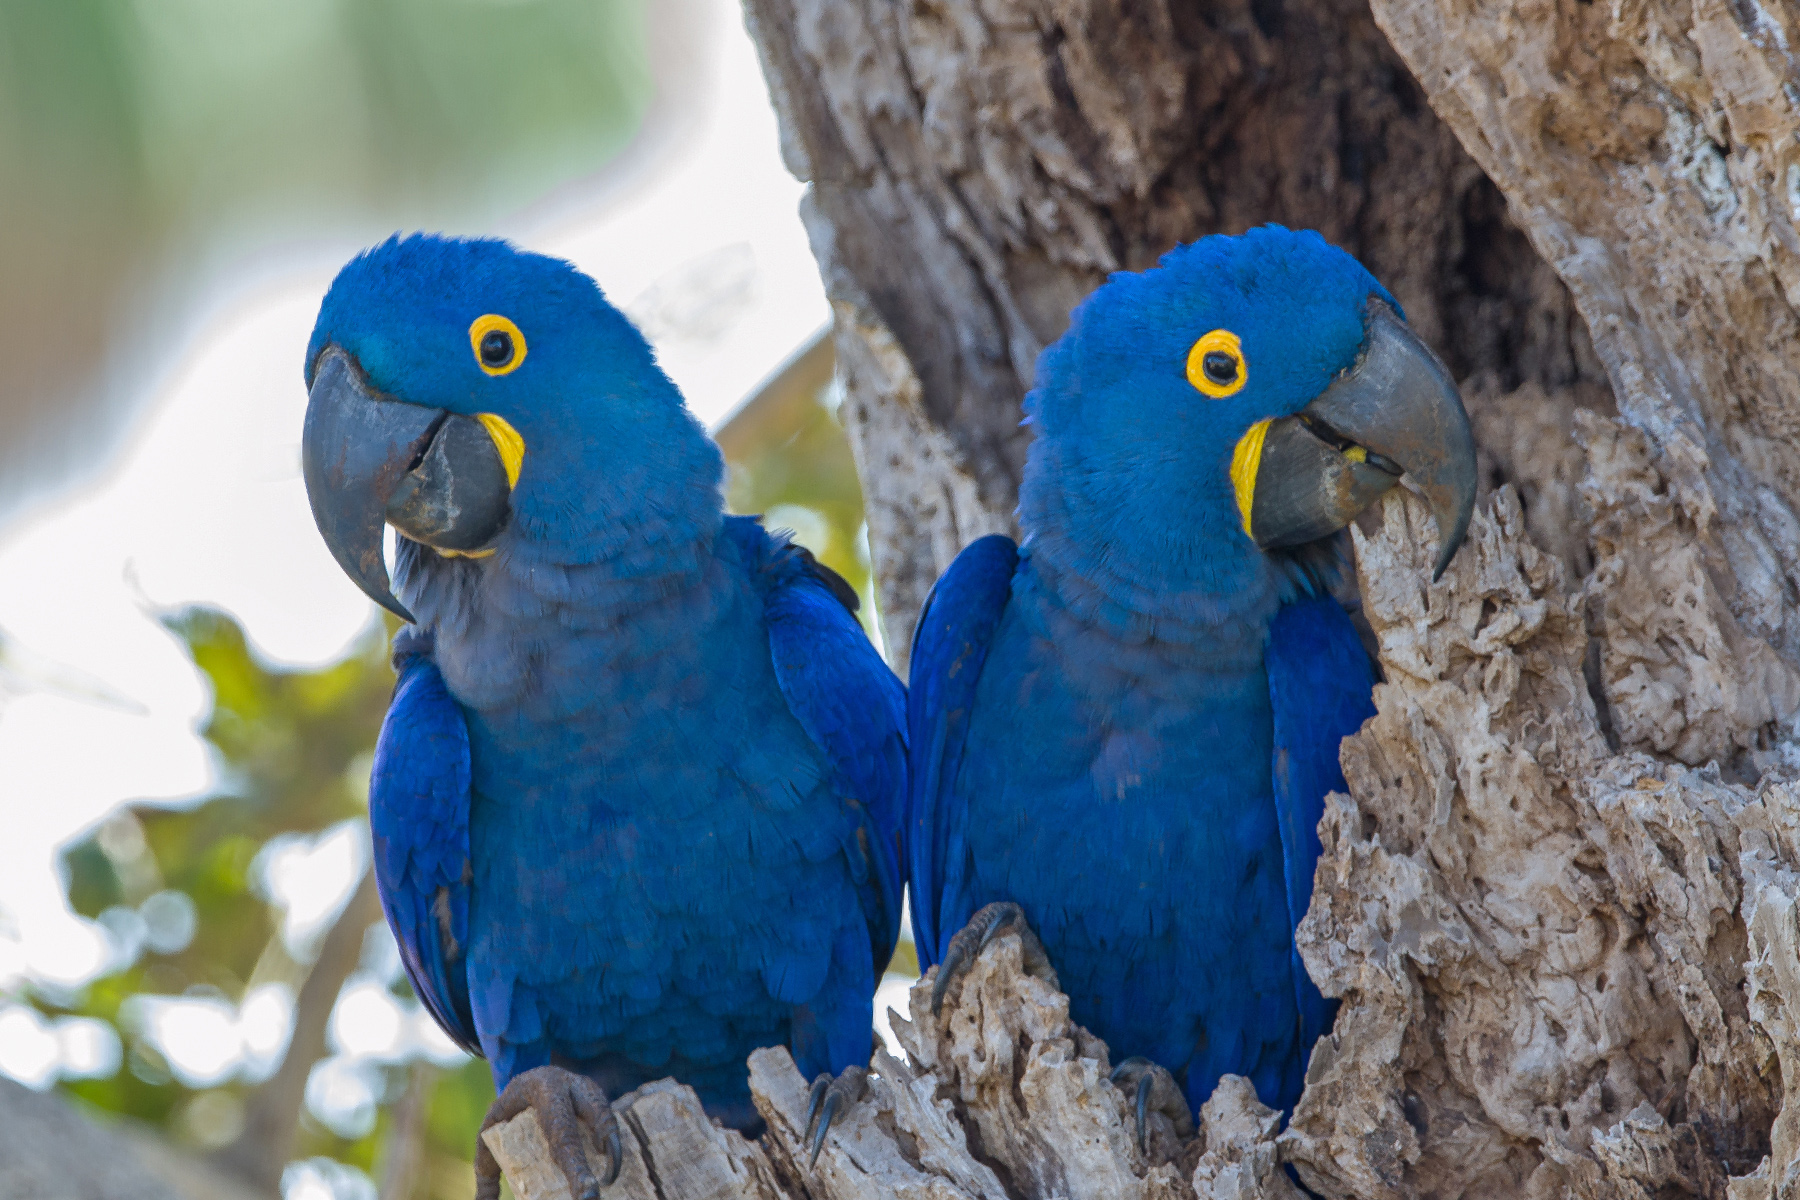 South American bird trade reaches lowest level in decades